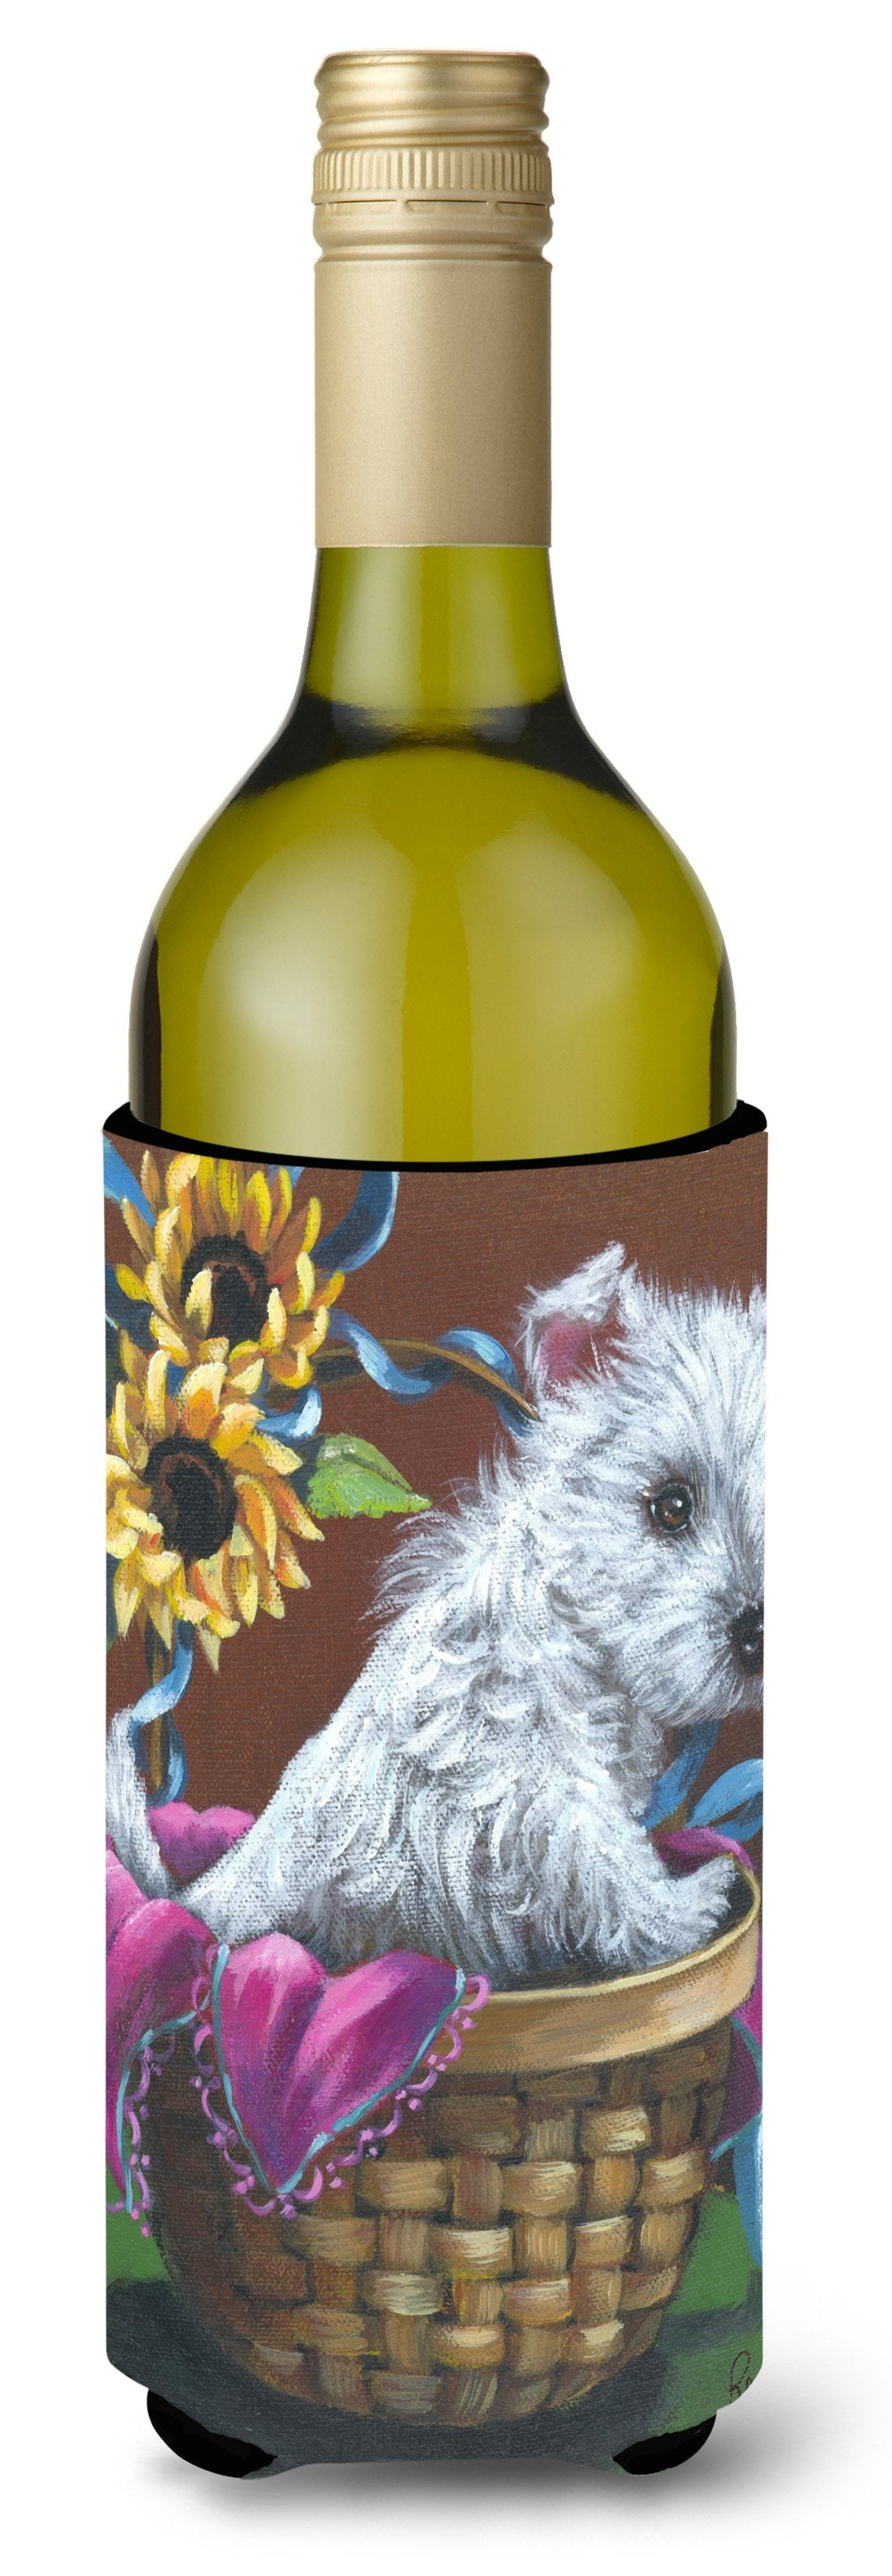 Westie Zoe and Sunflowers Wine Bottle Hugger PPP3236LITERK by Caroline's Treasures